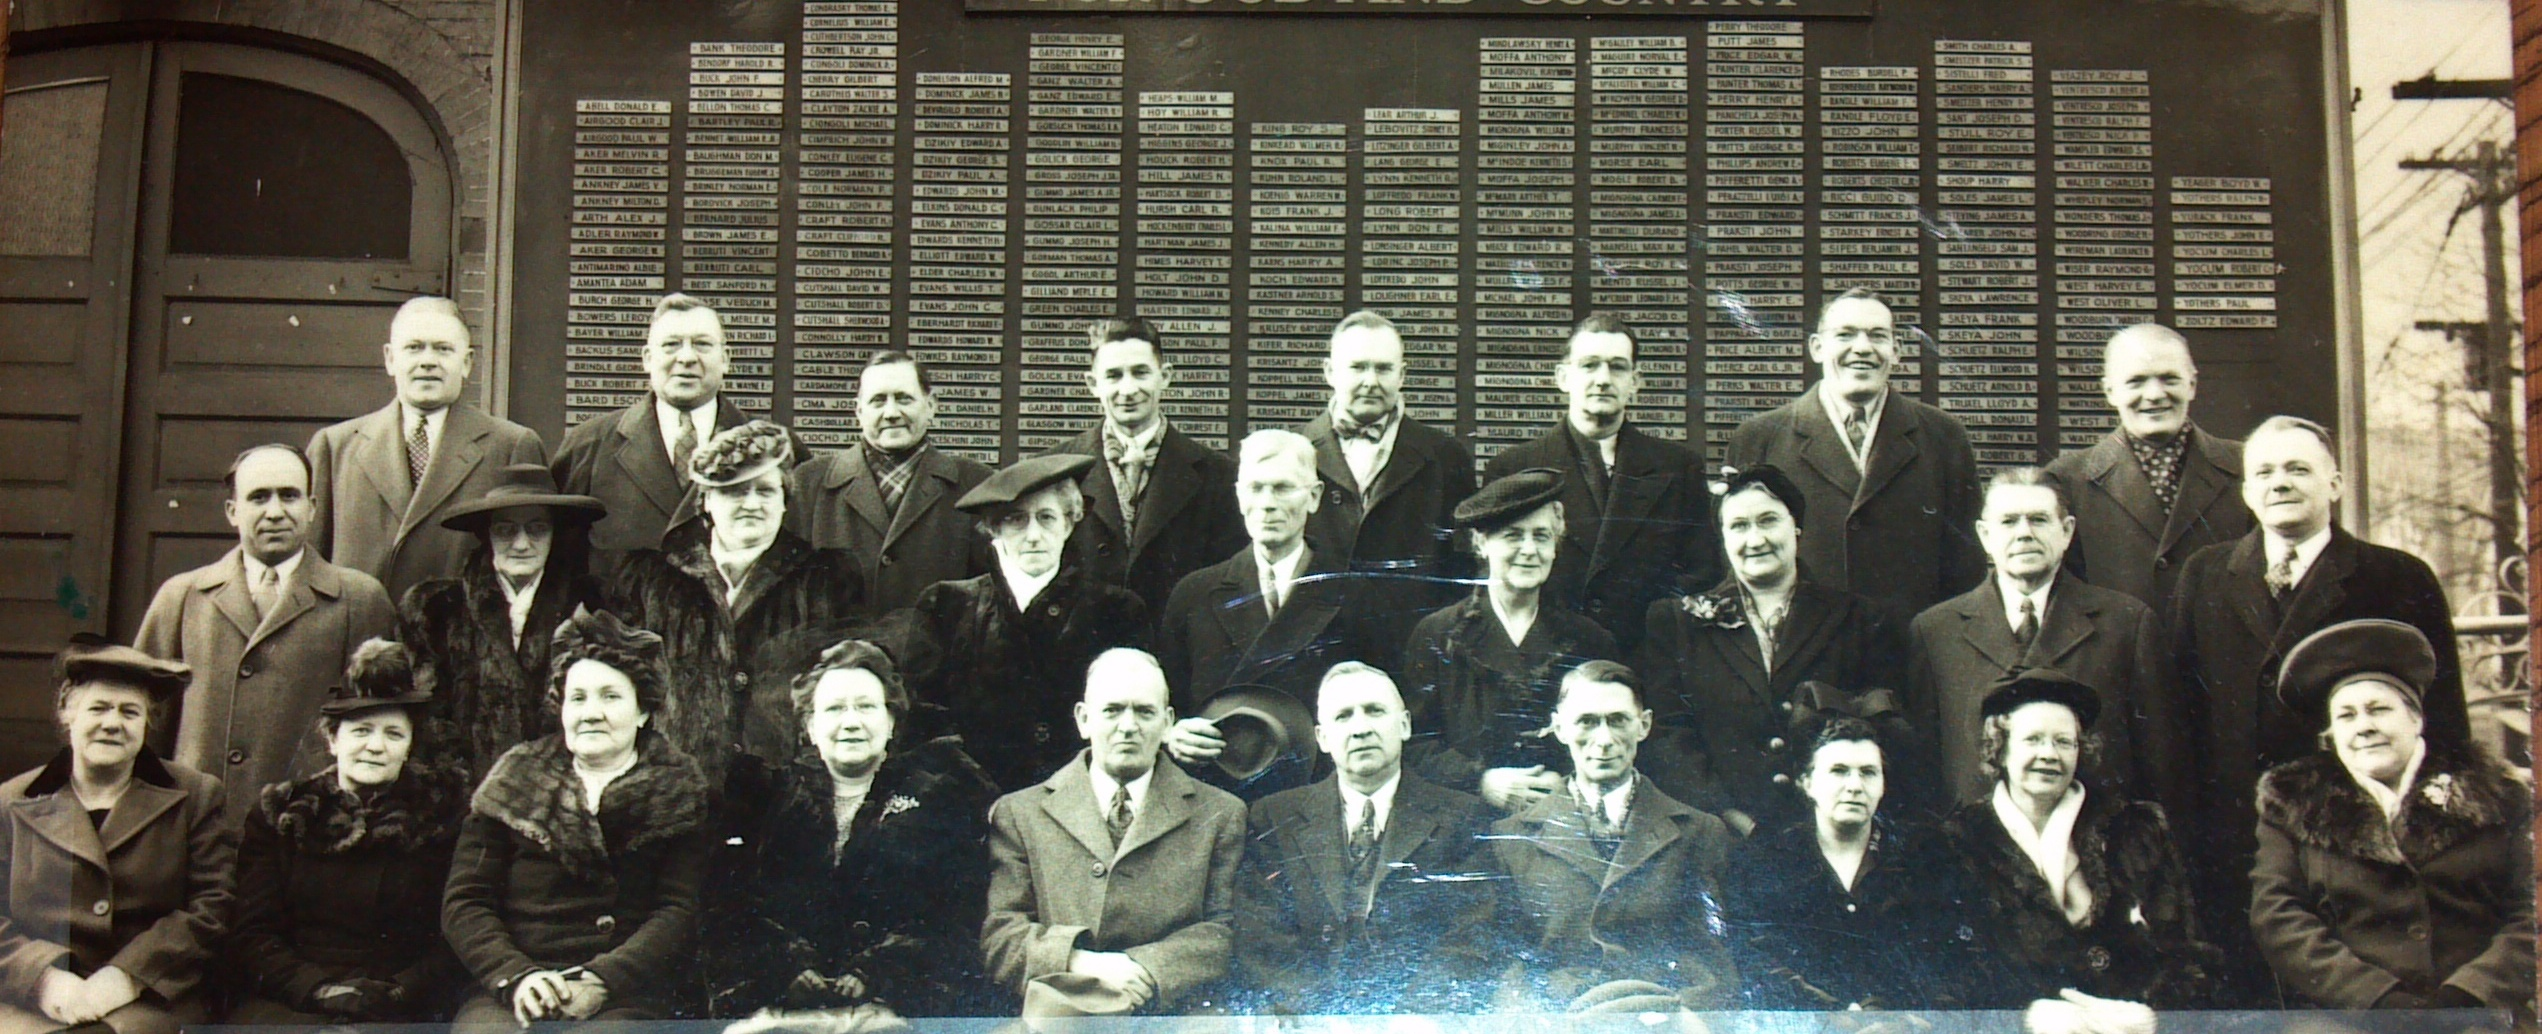 WWII Memorial Tablet Committee